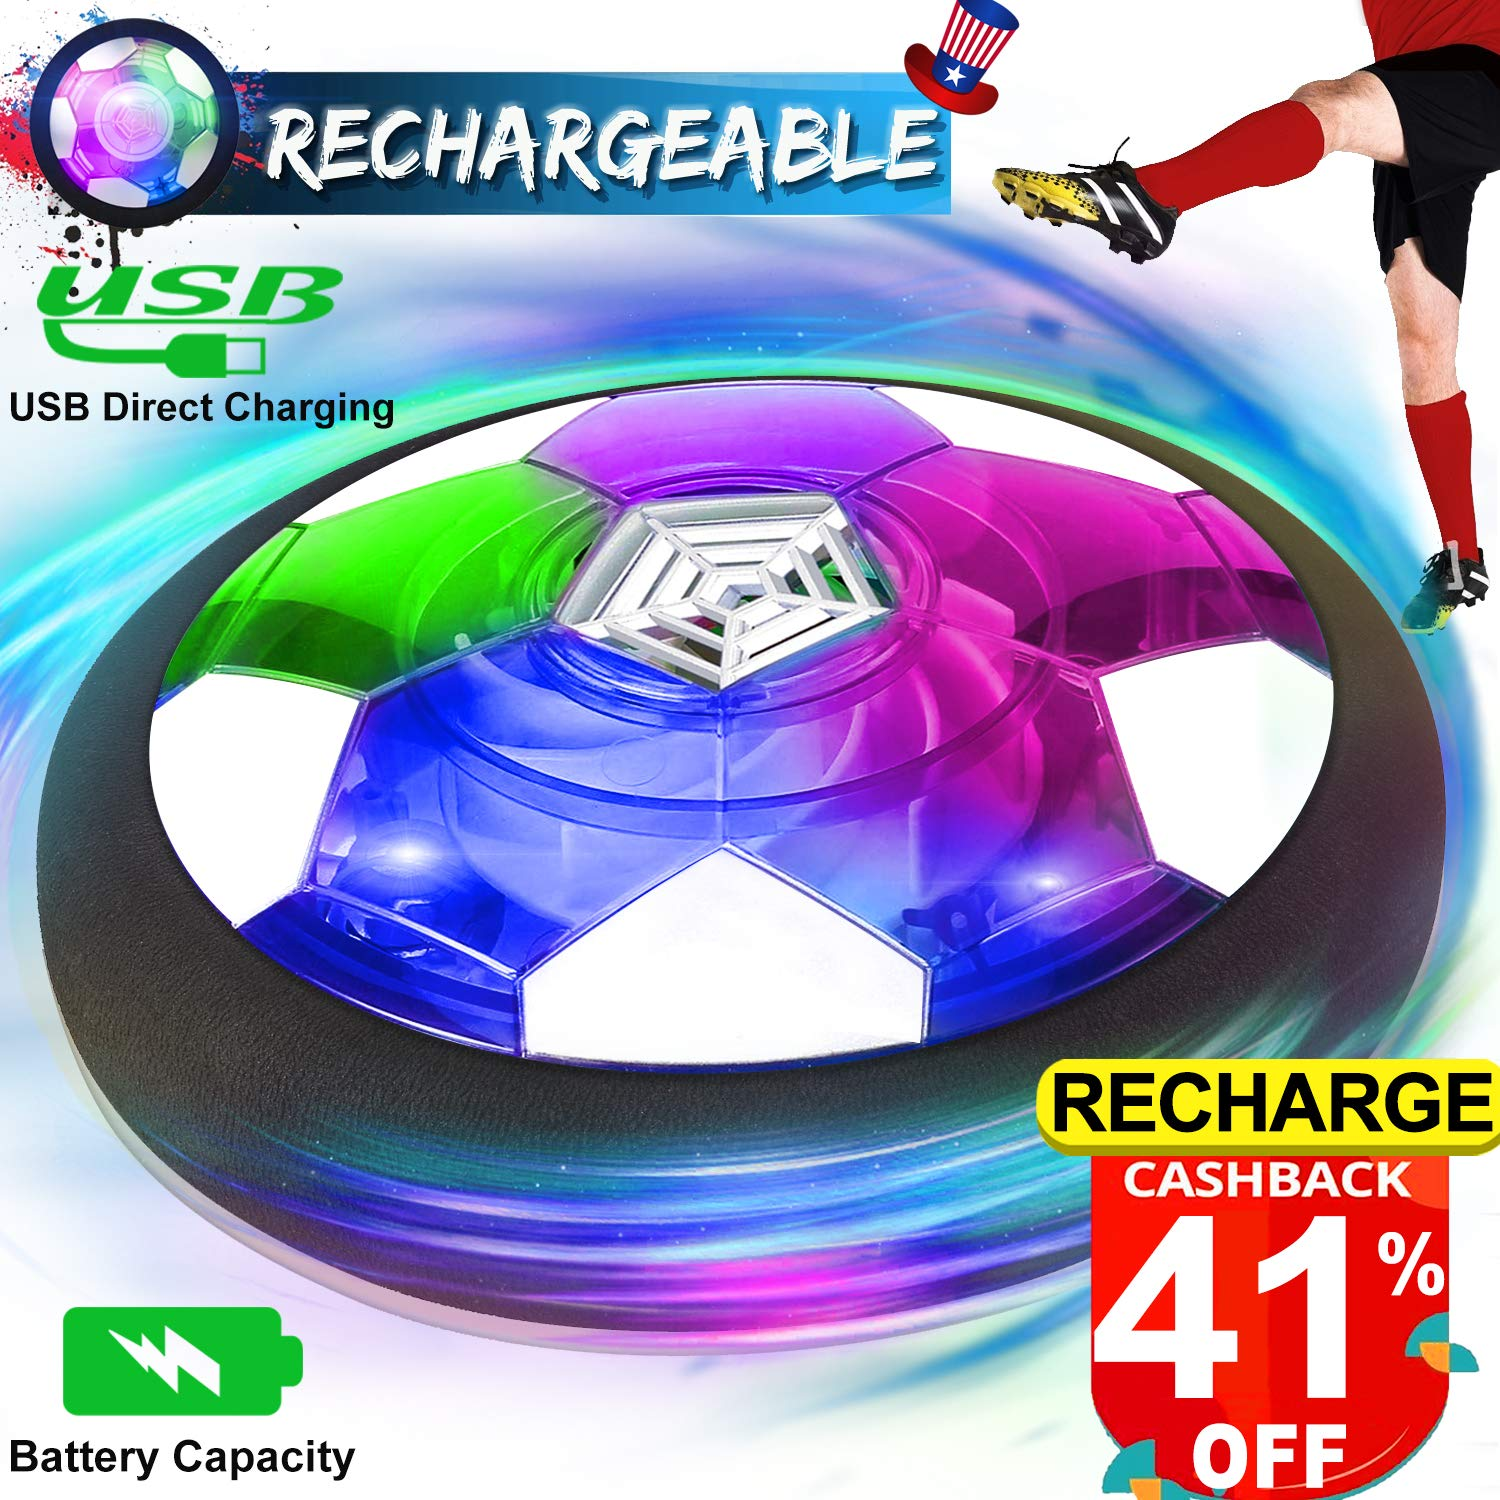 Kids Toys Hover Soccer Ball Rechargeable Air Soccer Ball, Indoor Outdoor Soccer Ball Floating Soccer with Beautiful LED Light & Foam Bumper,Boys Girls Age 2, 3, 4,5,6,7,8-16 Year Old by Camlinbo